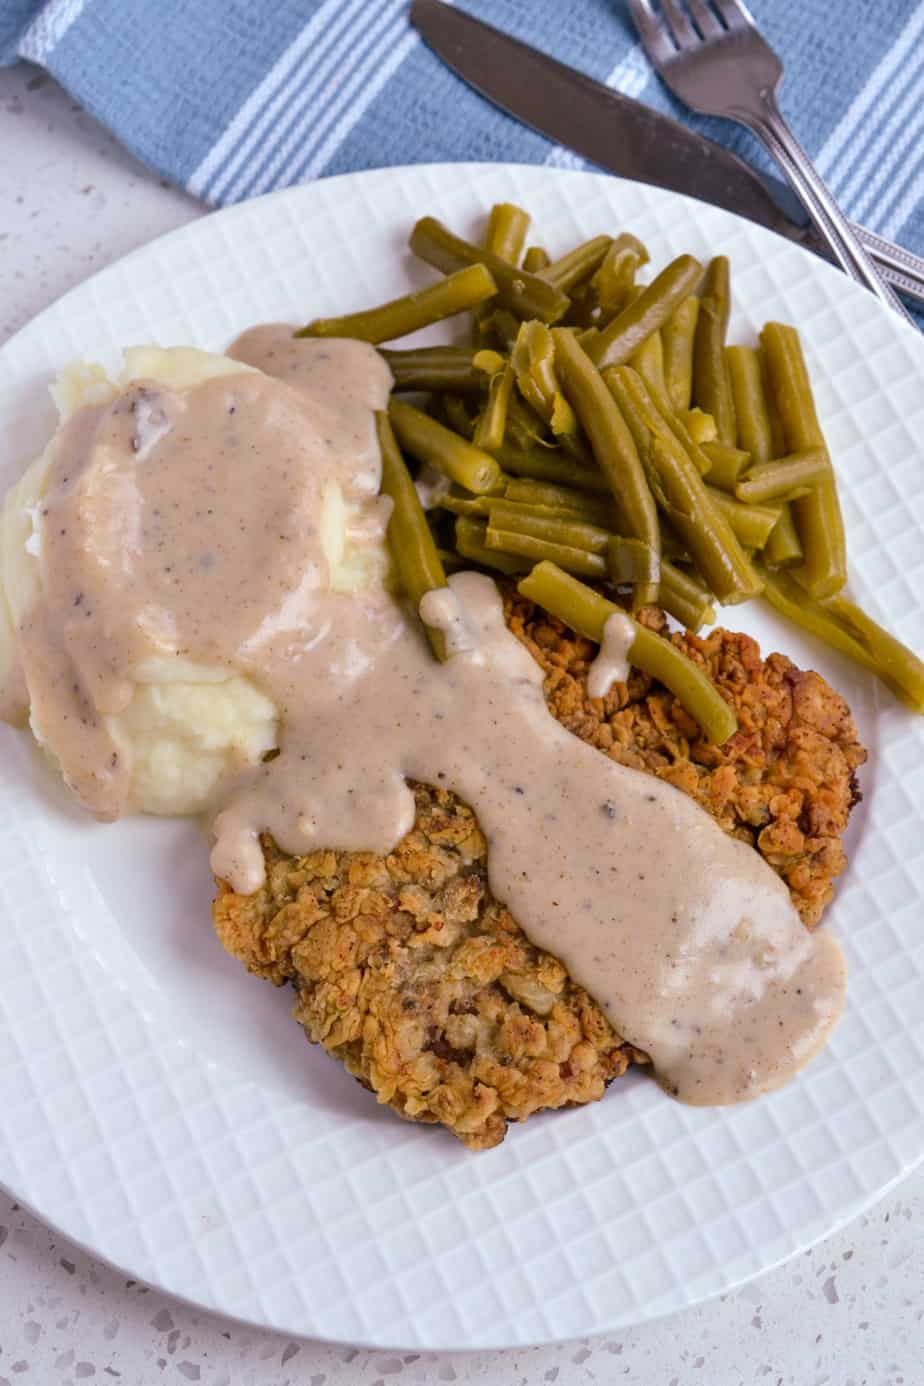 Country fried steak with mashed potatoes and green beans